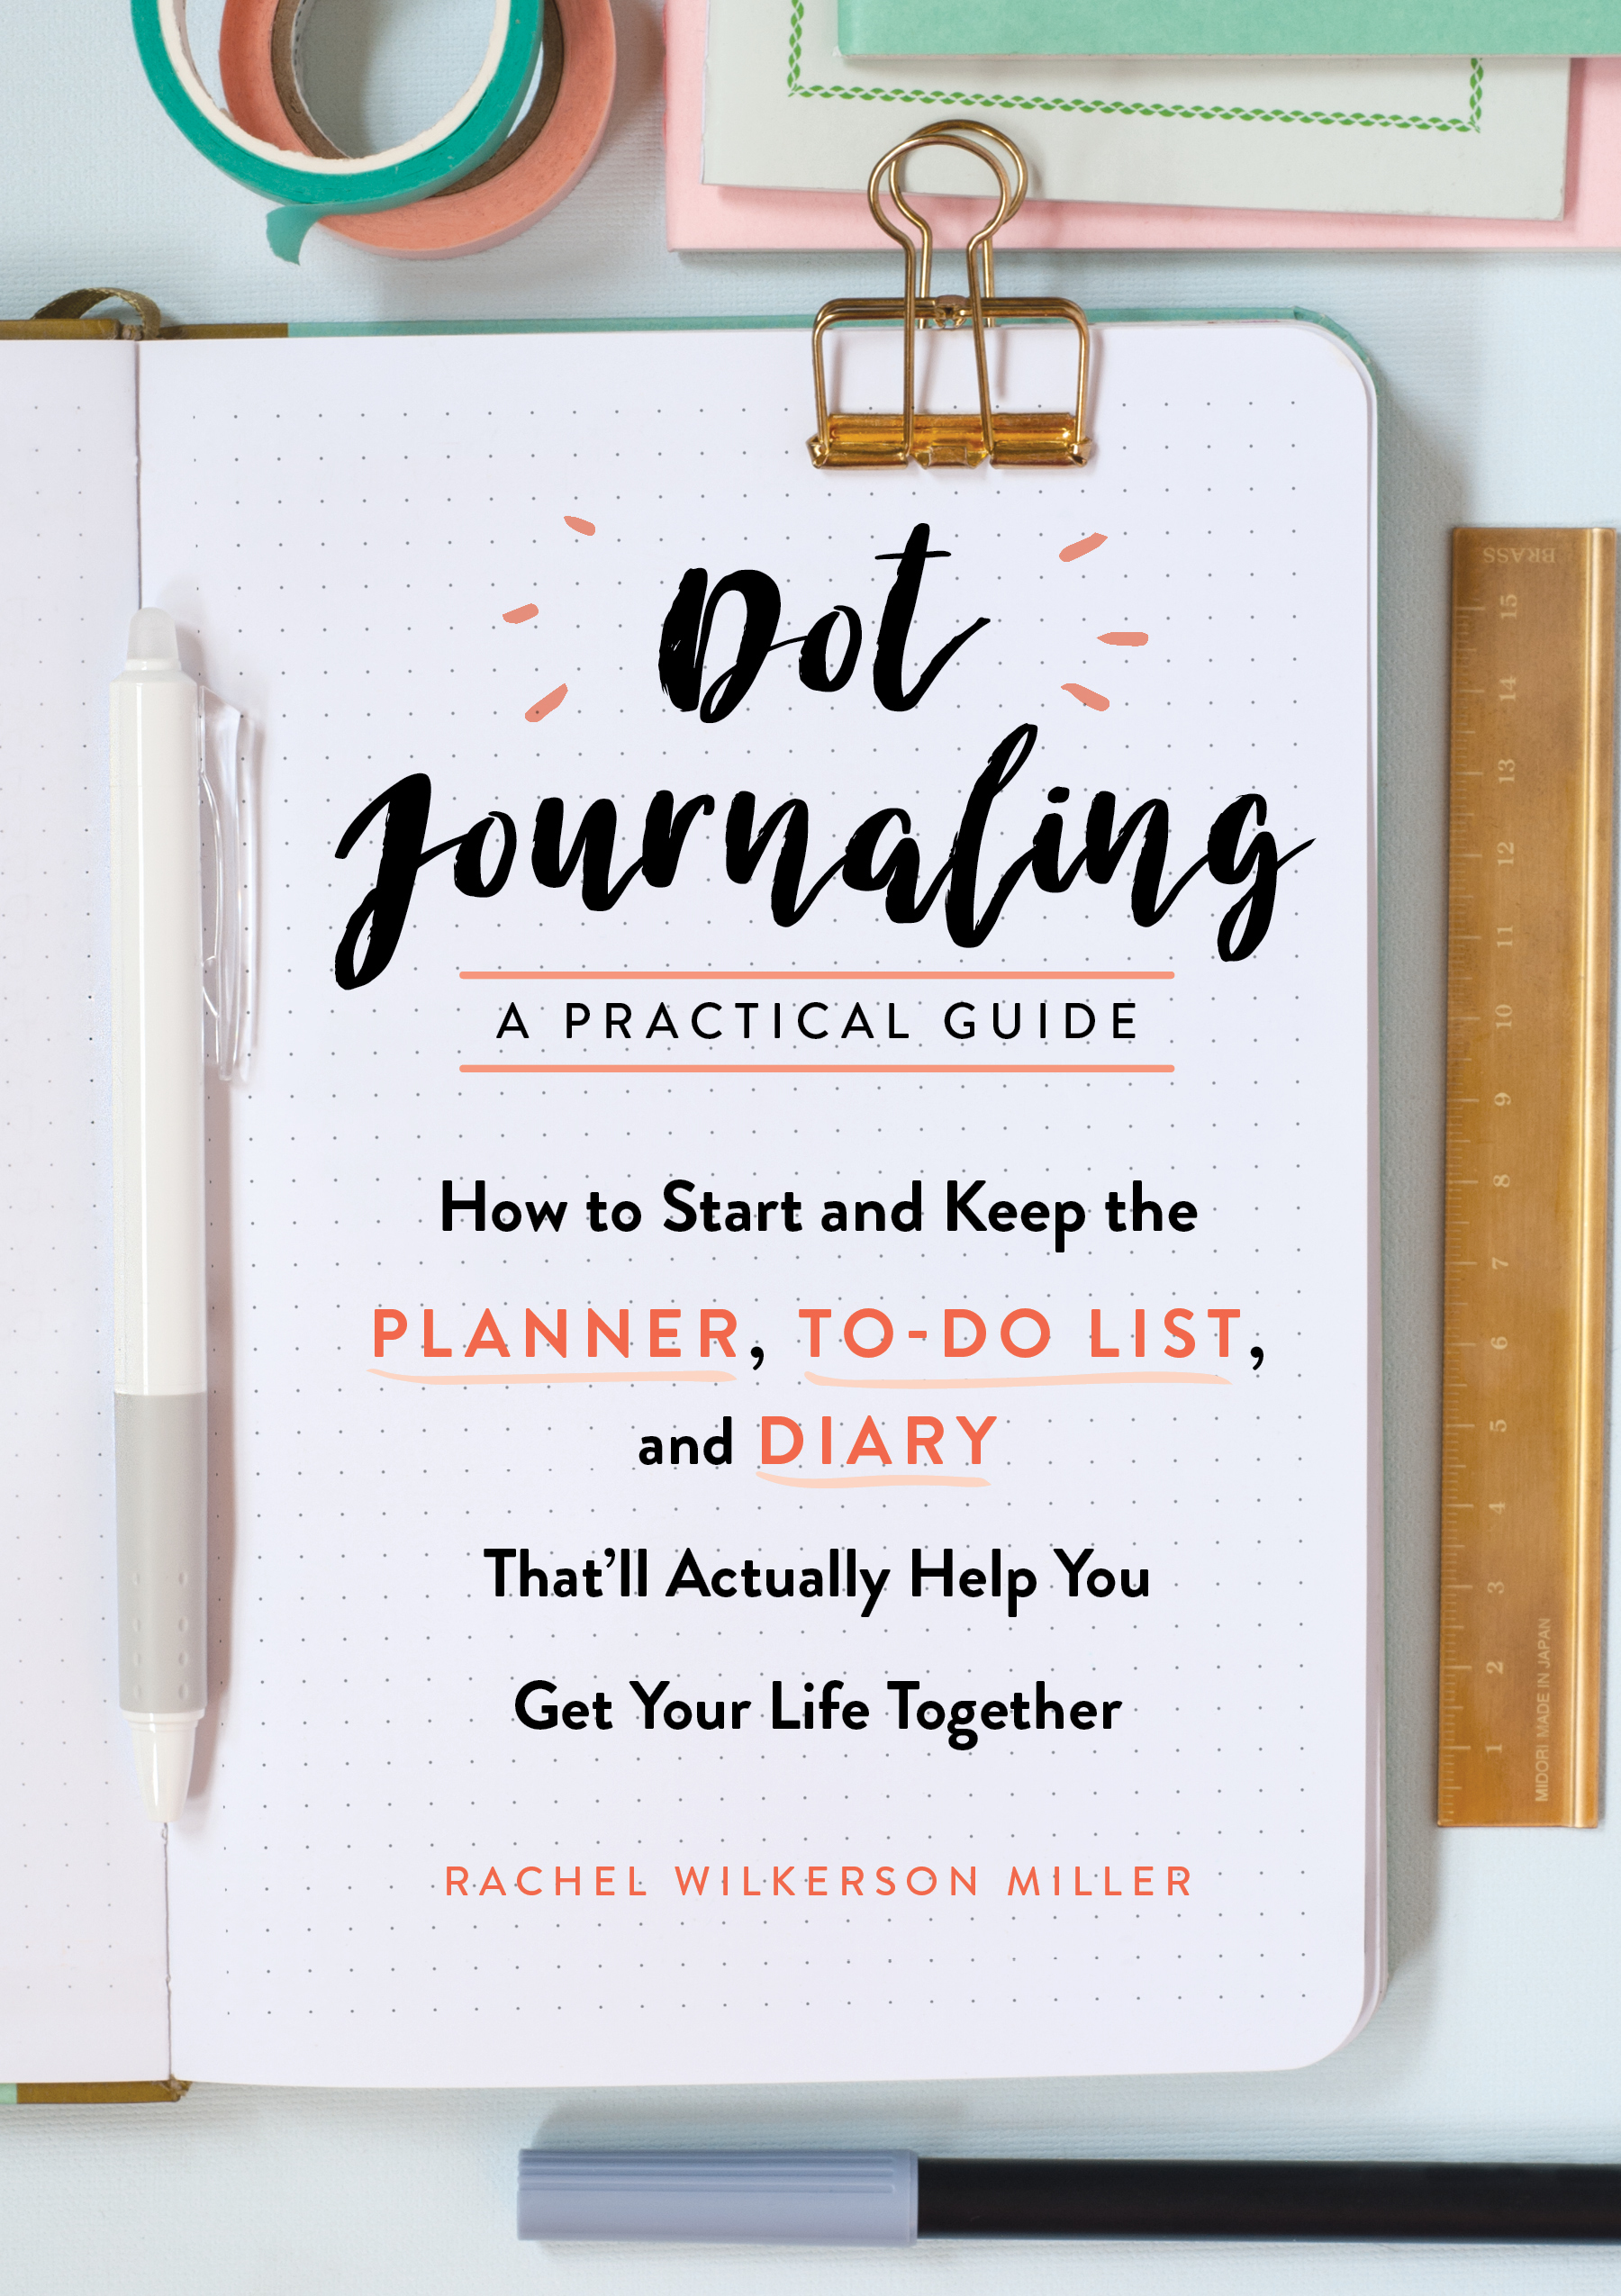 Dot Journaling: A Practical Guide: How to Start and Keep the Planner, To-Do List, and Diary That'll Actually Help You Get Your Life Together